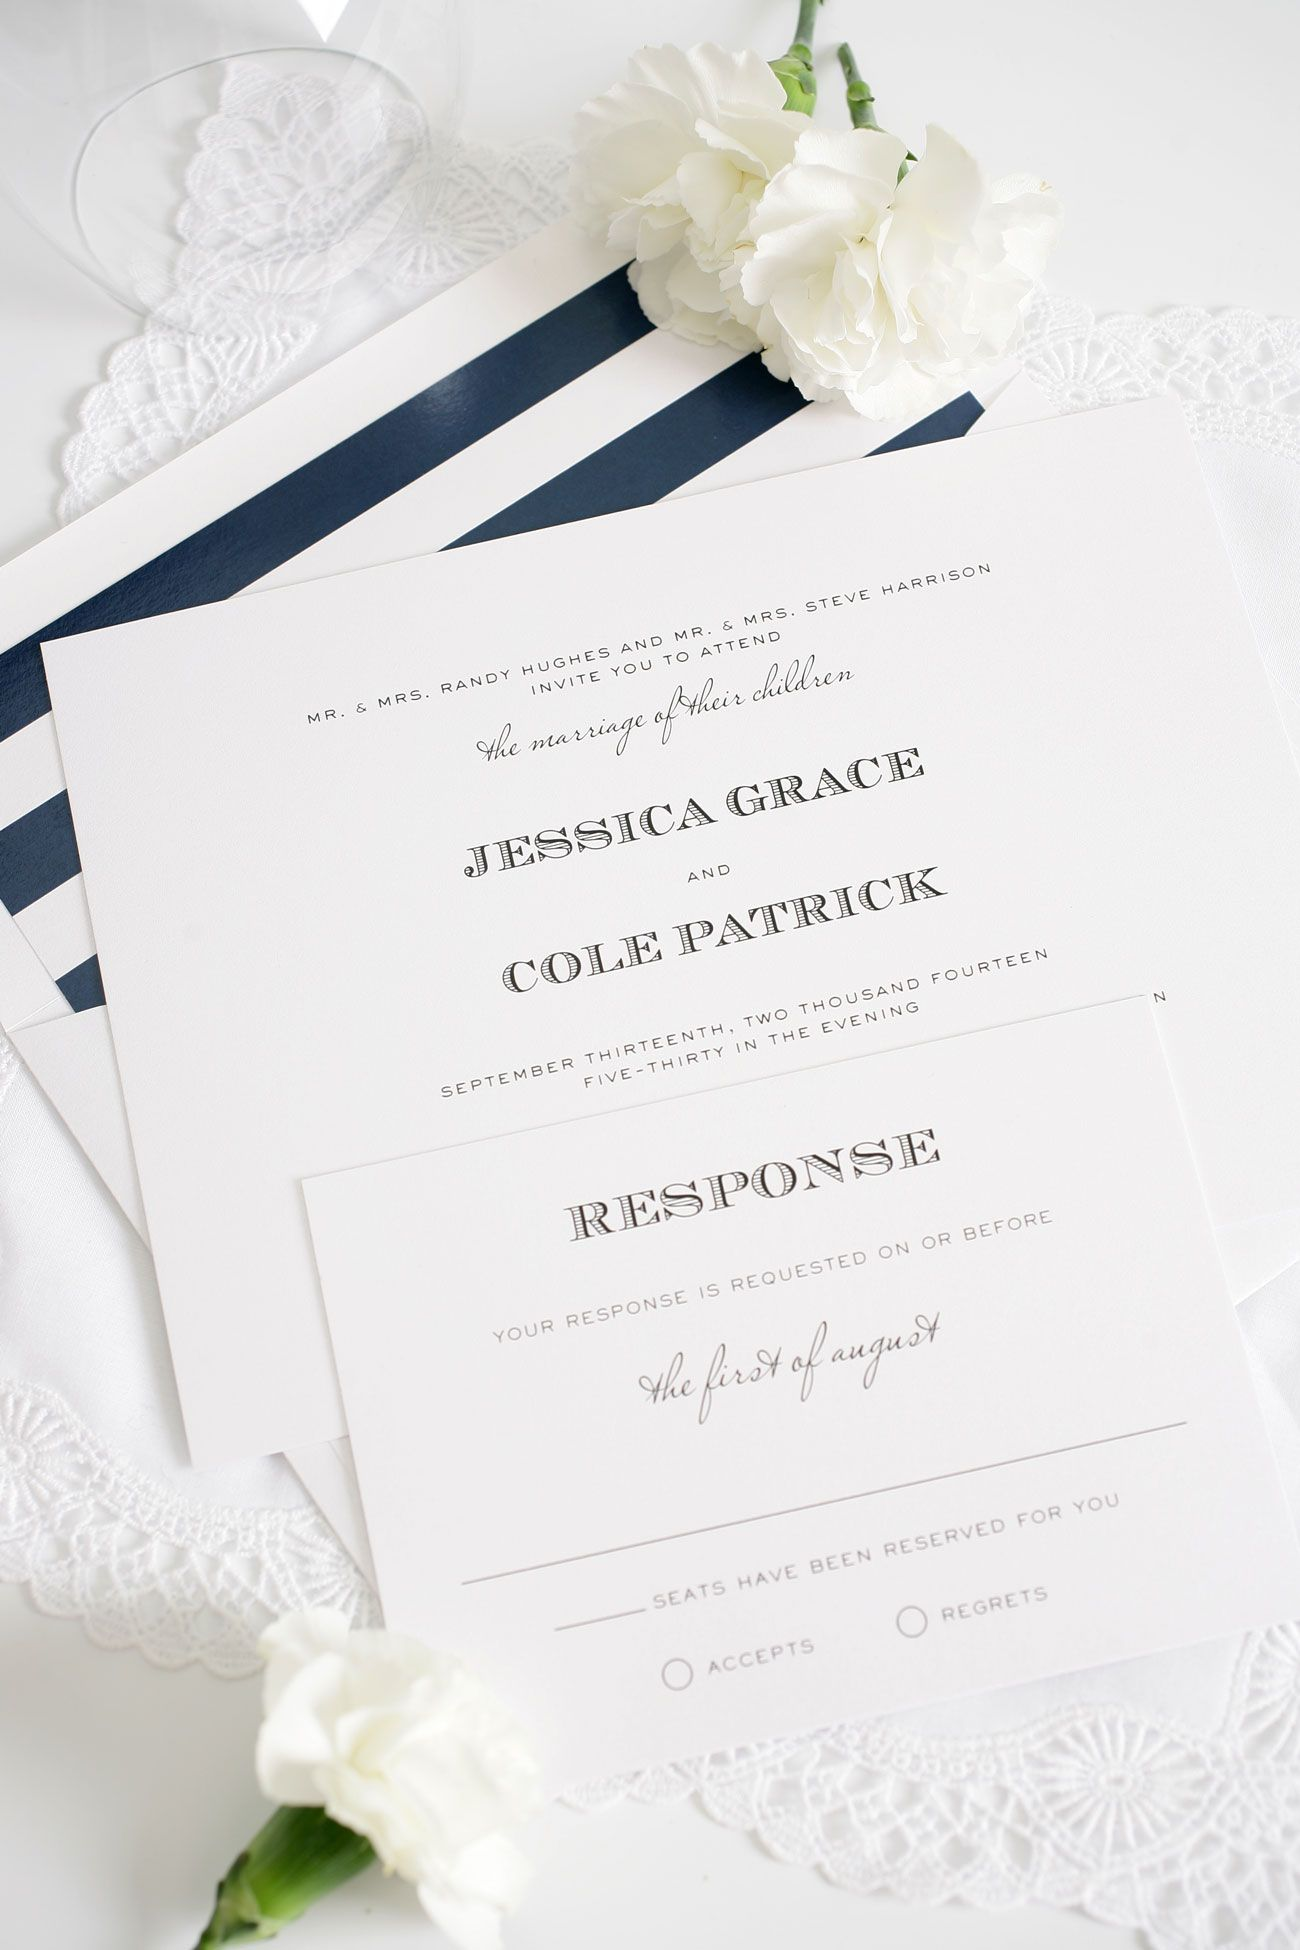 Vintage Wedding Invitations in Navy and Lime Green | Pinterest ...